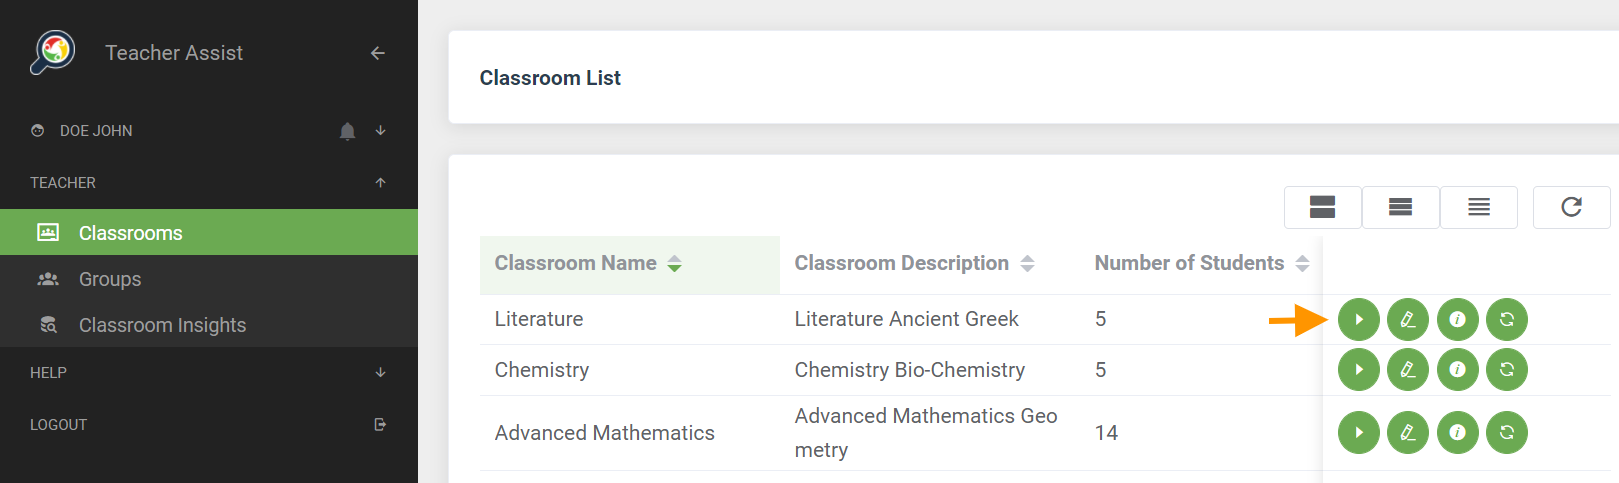 Teacher Assist | View and access students' Google Drive files 1